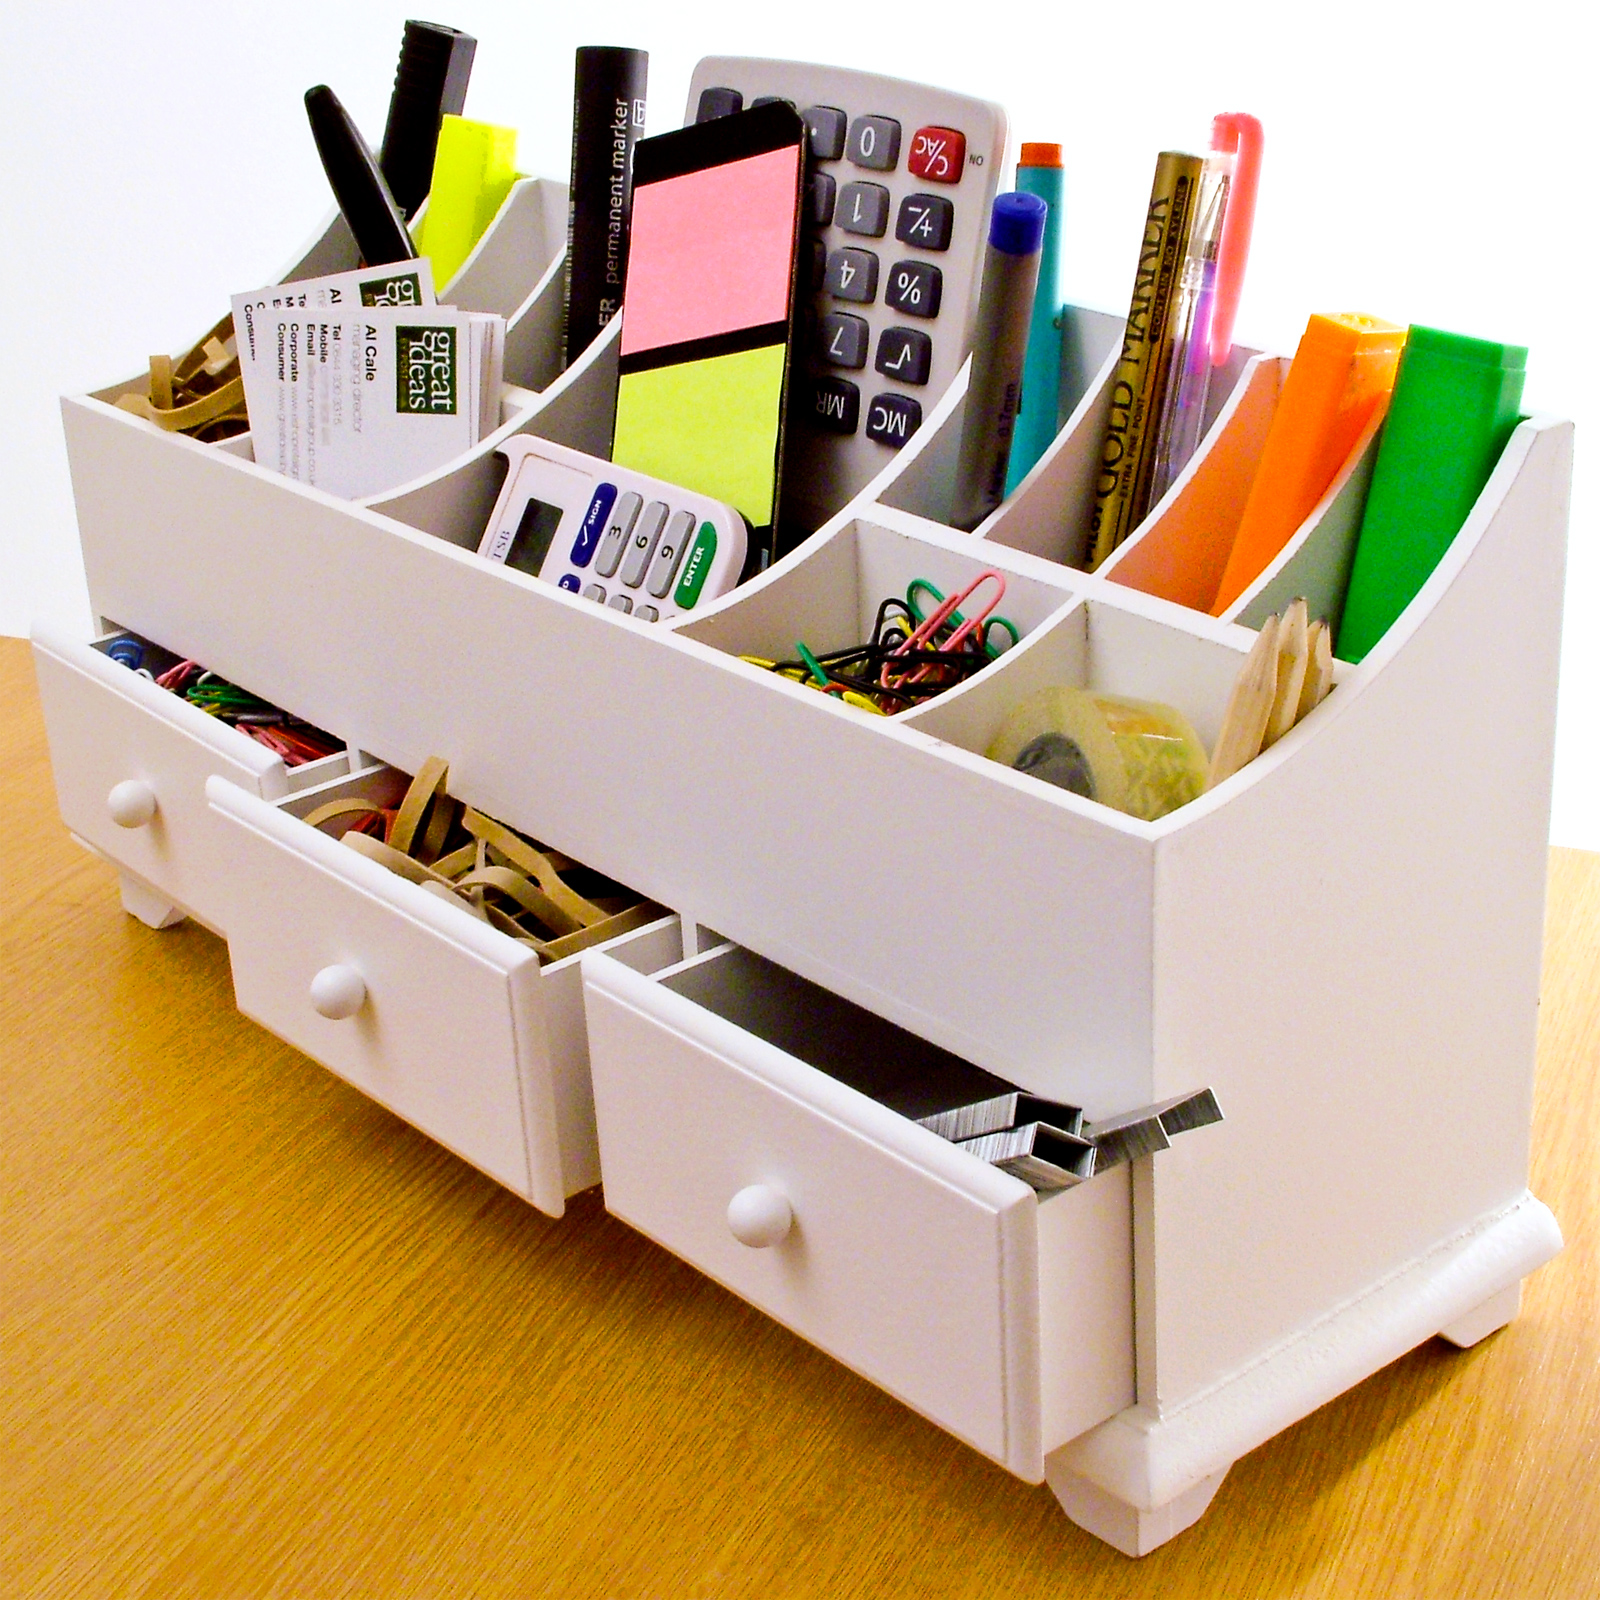 Details about Wooden Desk Tidy Organiser Caddy Pen Holder Tidy Make Up ...